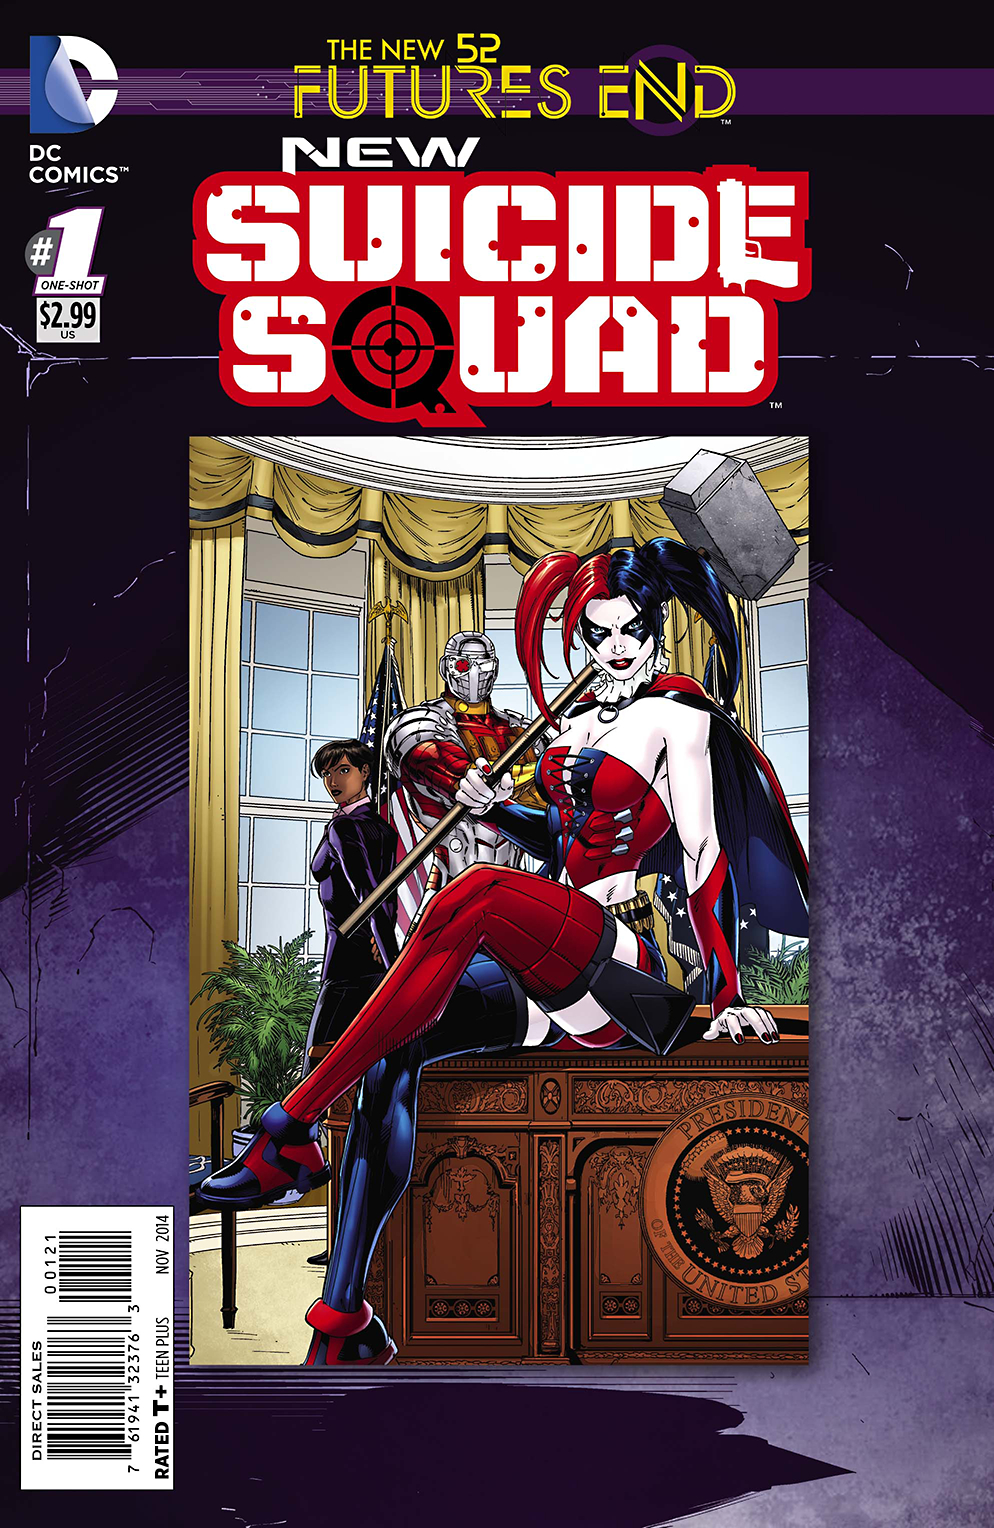 NEW SUICIDE SQUAD FUTURES END #1 STANDARD ED